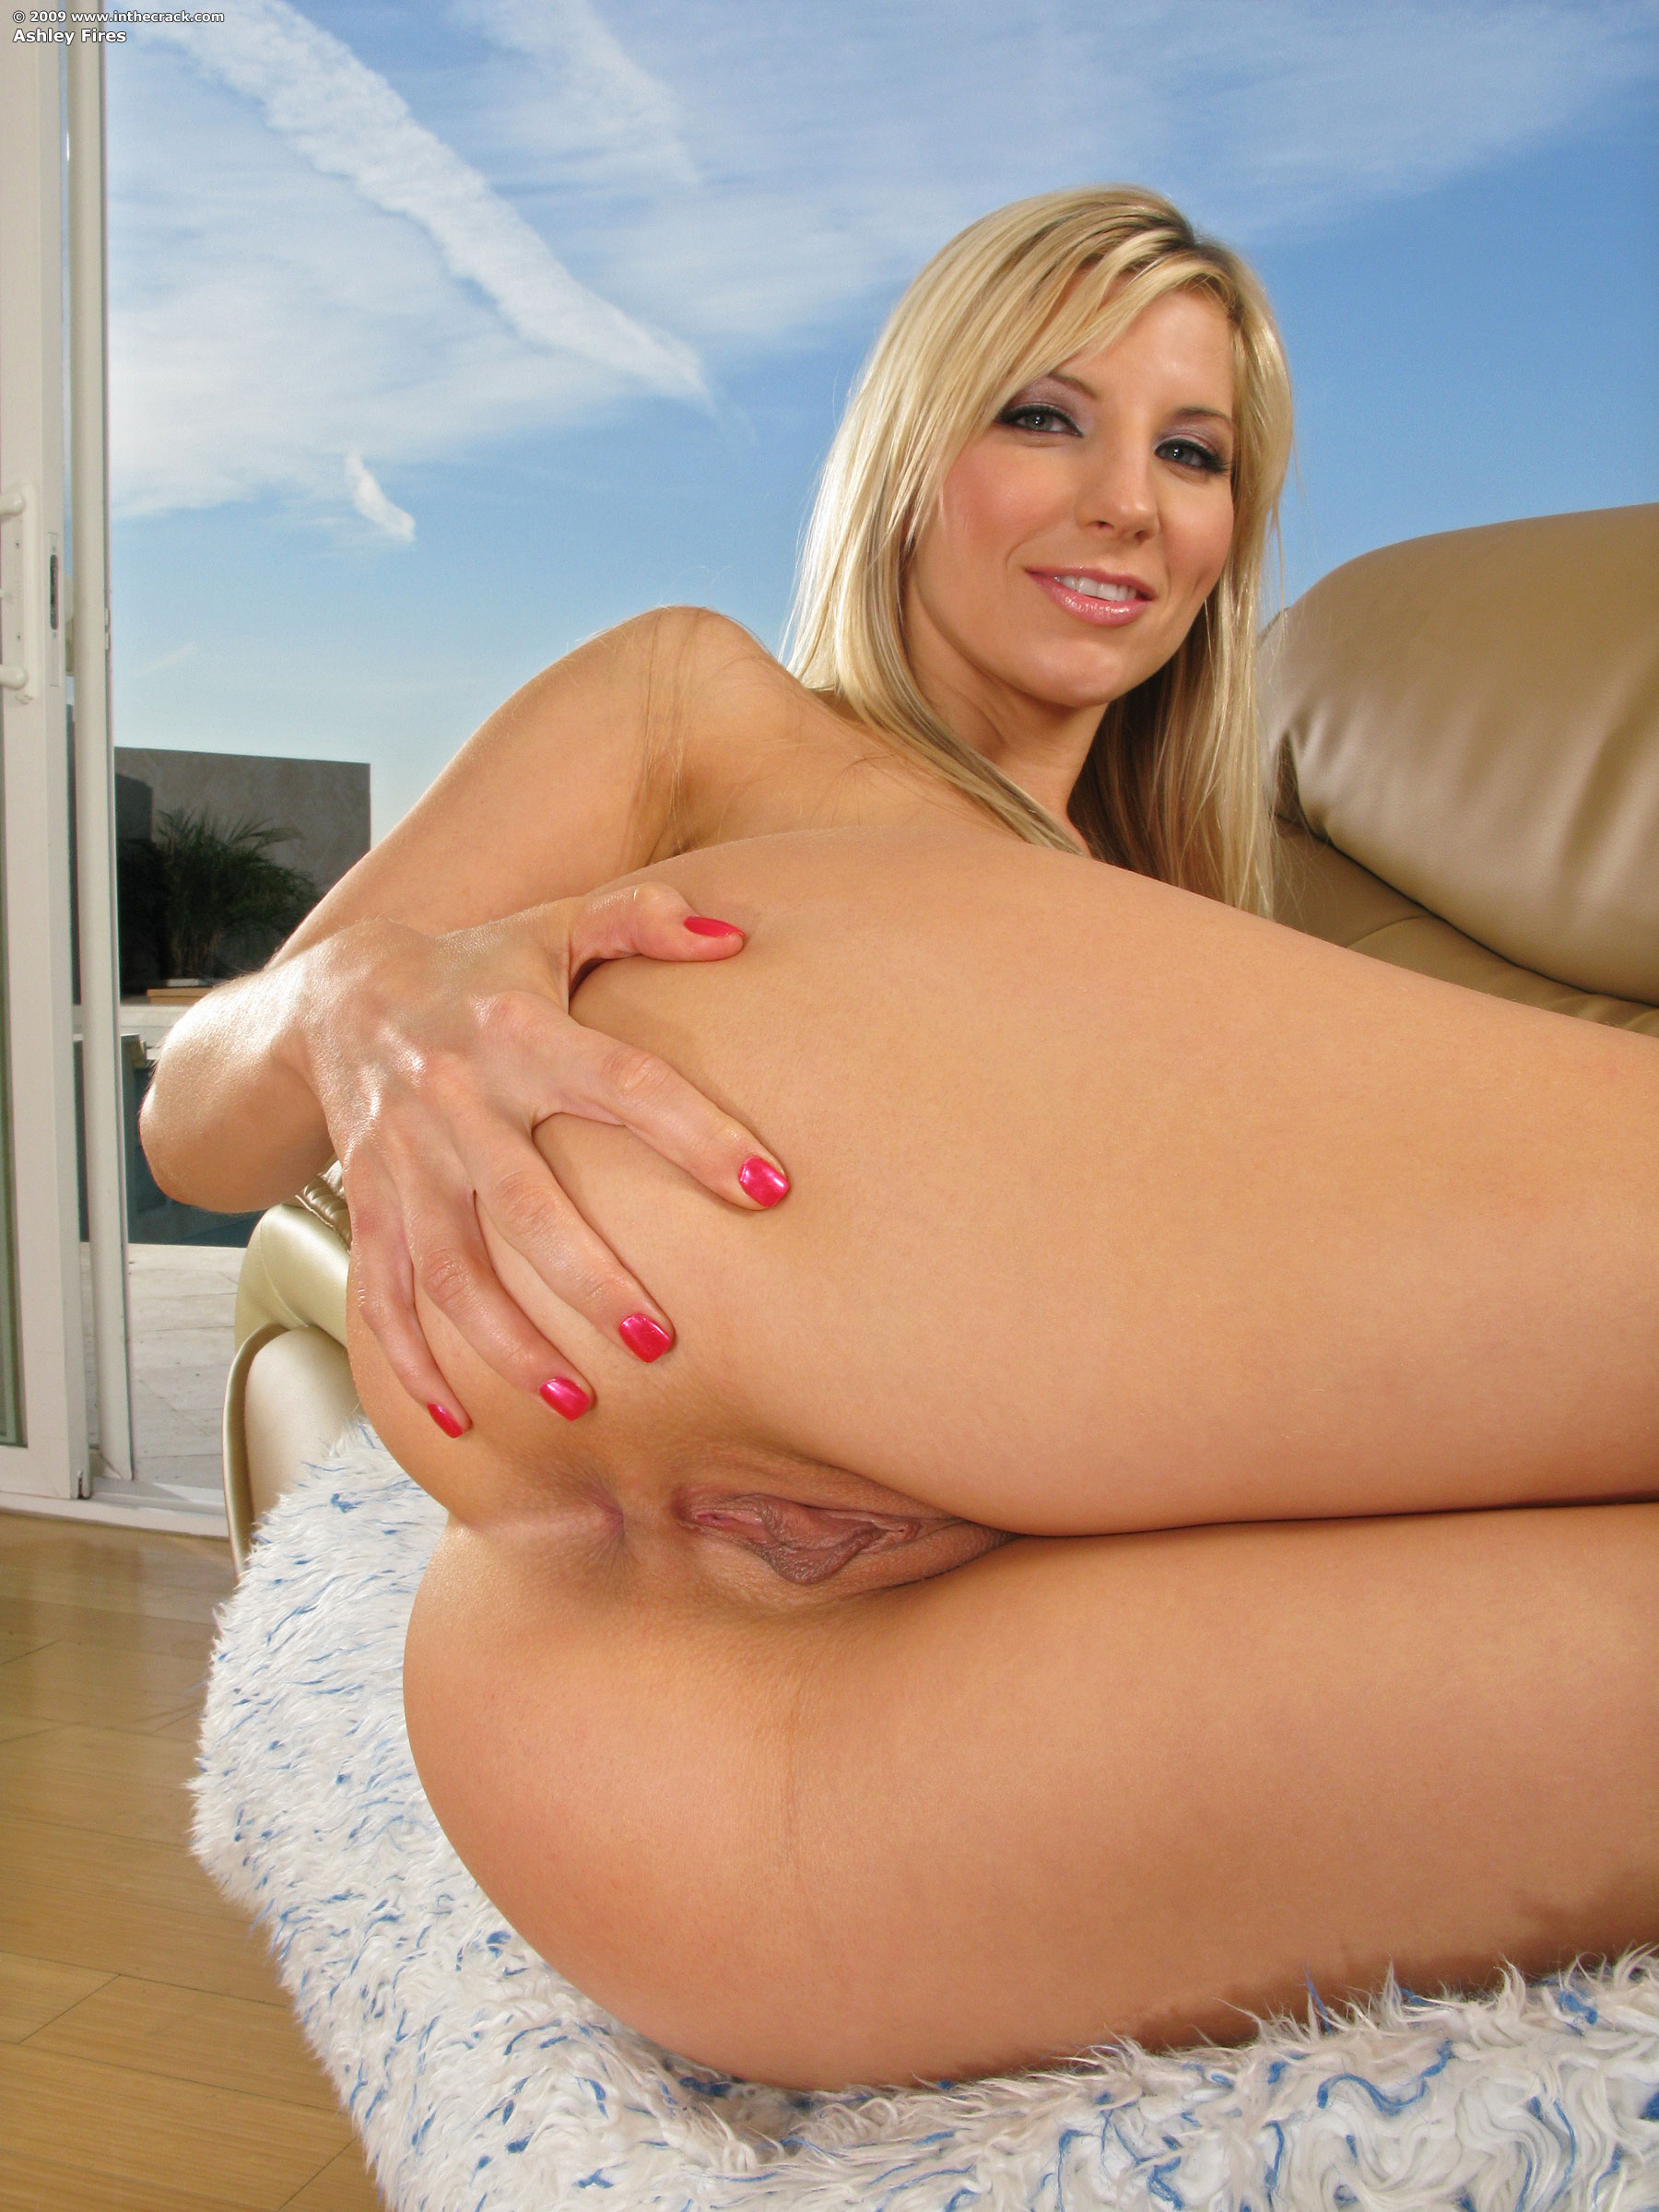 Ashley blue takes a hot load on her face 9